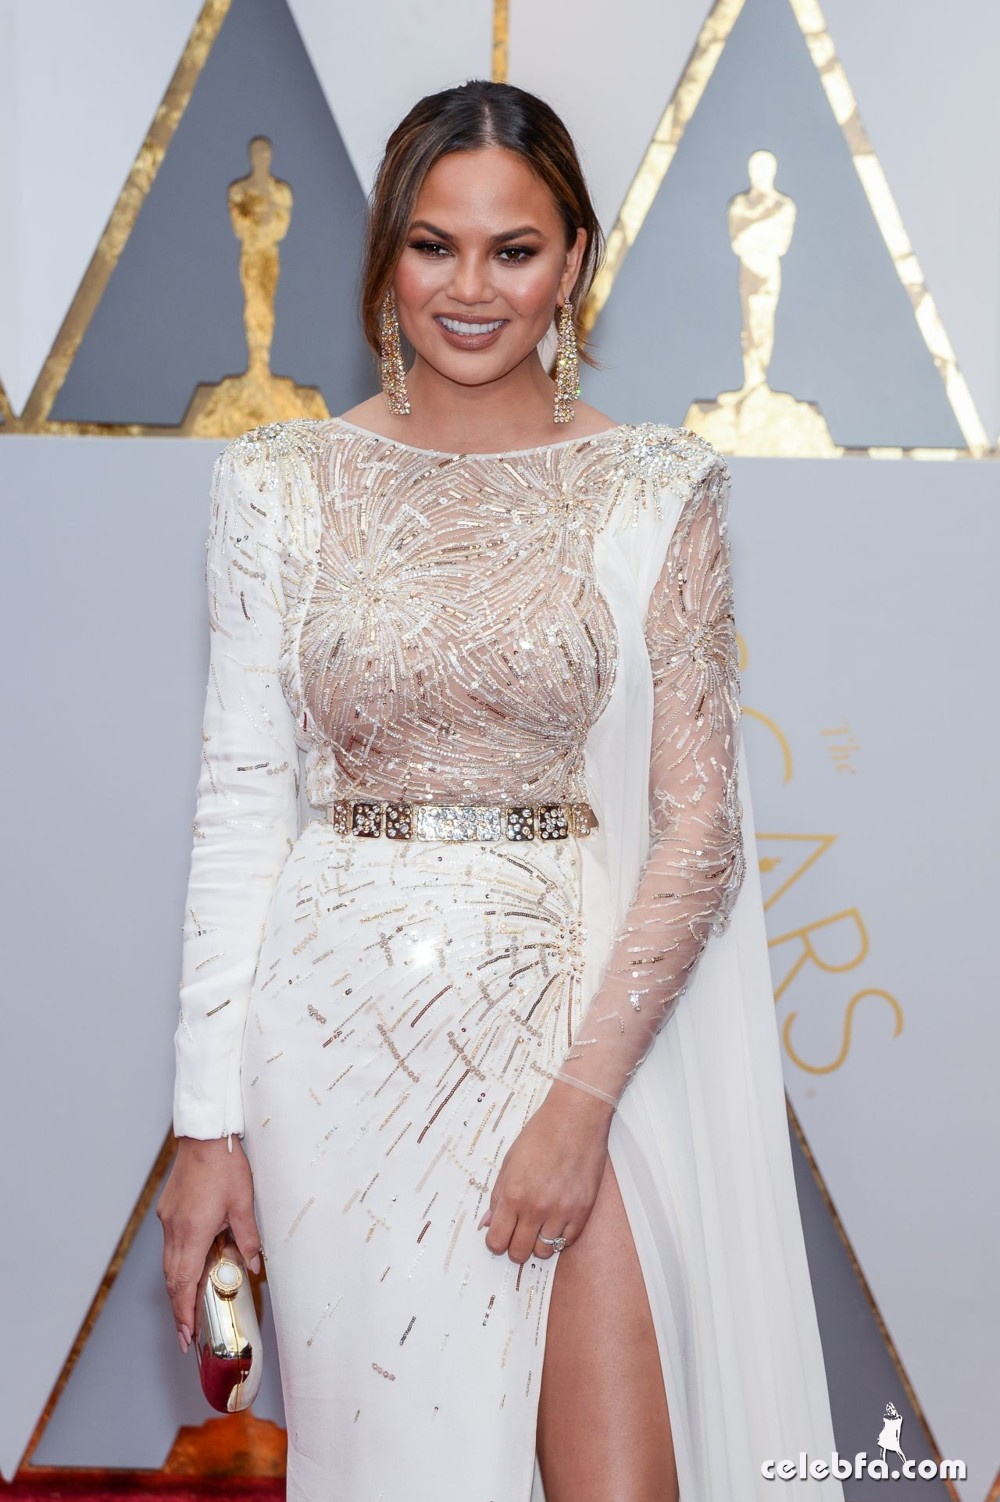 chrissy-teigen-oscars-2017-red-carpet-1